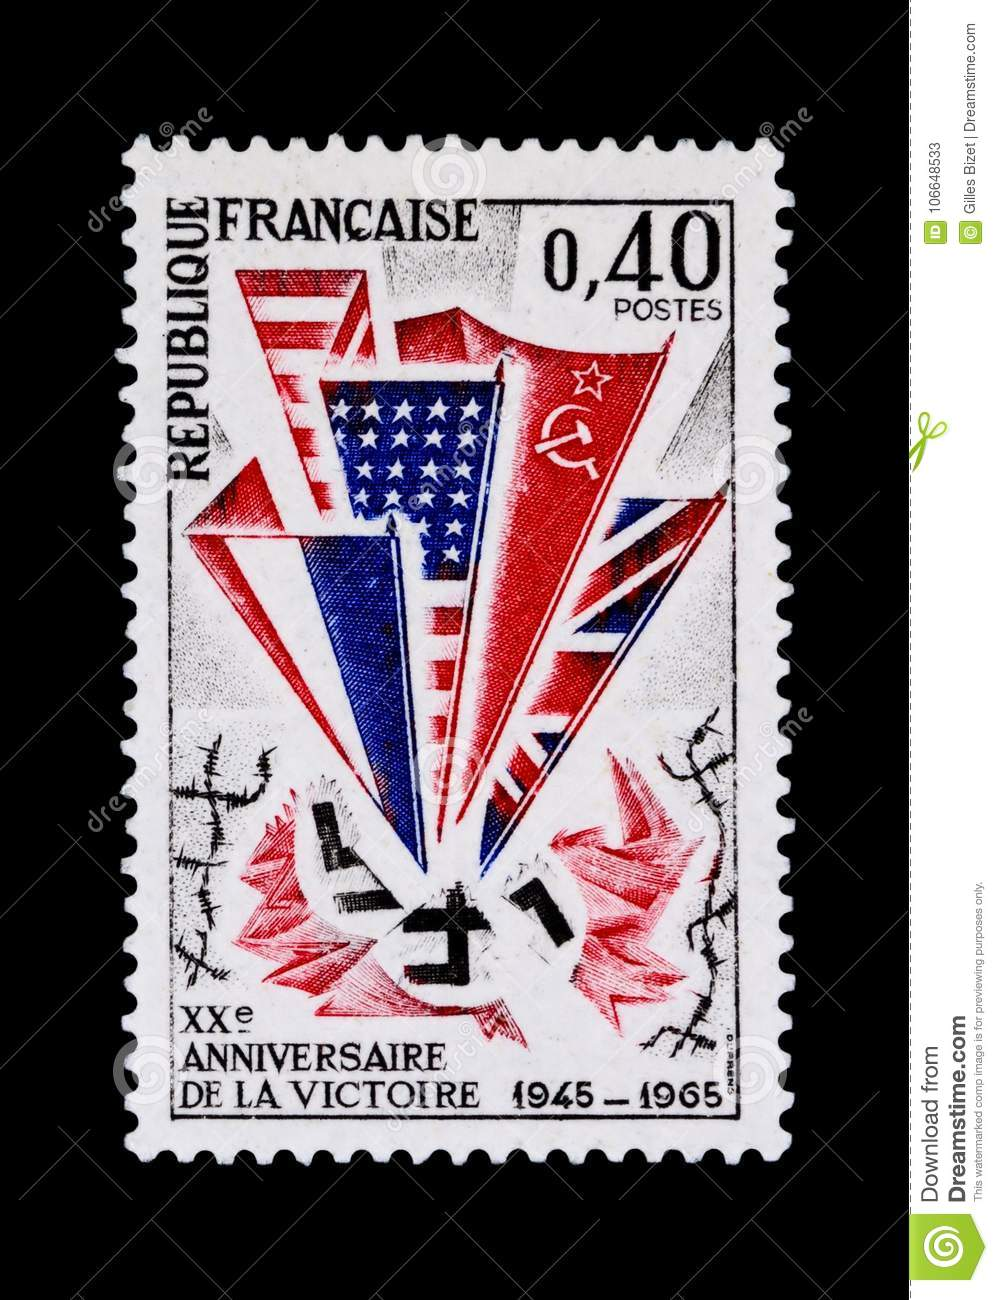 d711c42ba37b Commemorative Stamp Of The Victory Of 1945 Stock Image - Image of ...